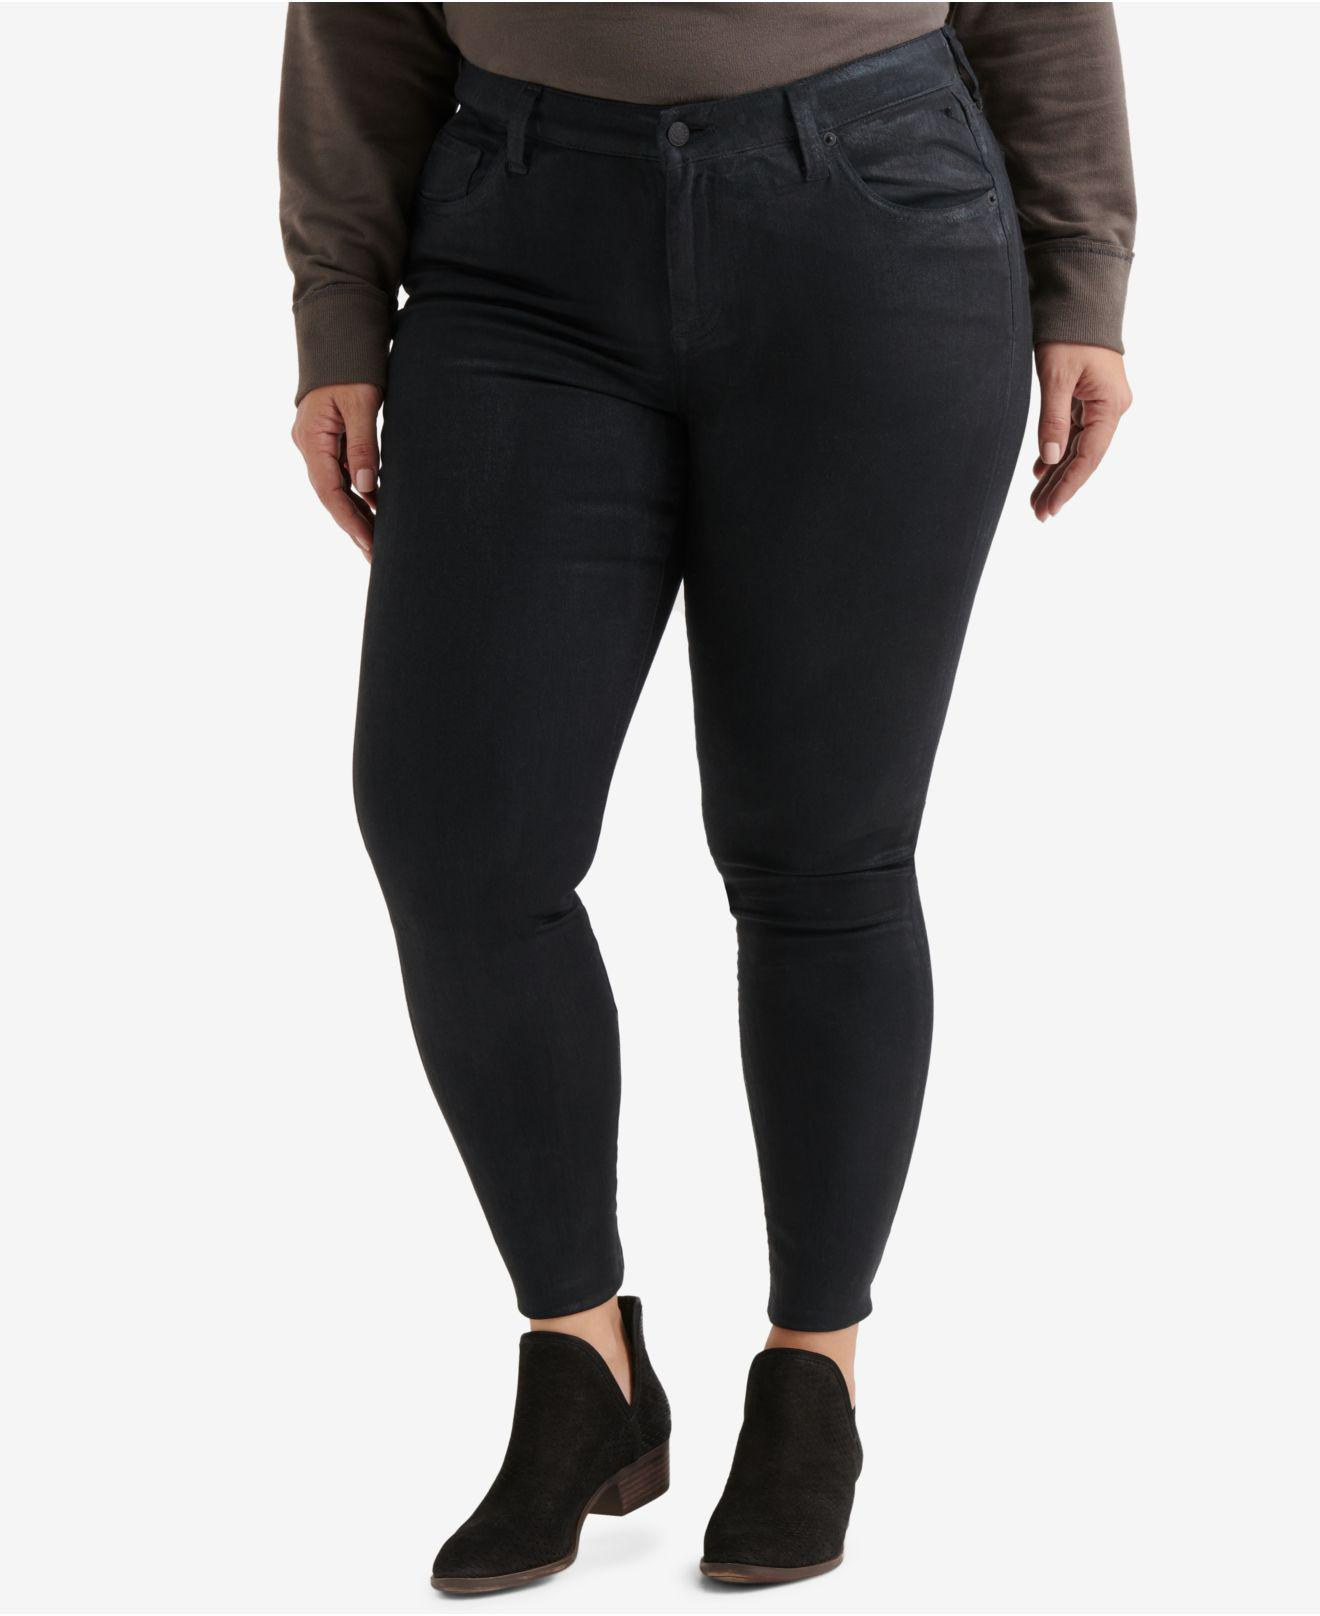 a1ca6fd04a93b Lyst - Lucky Brand Trendy Plus Size Ginger Skinny Jeans in Black